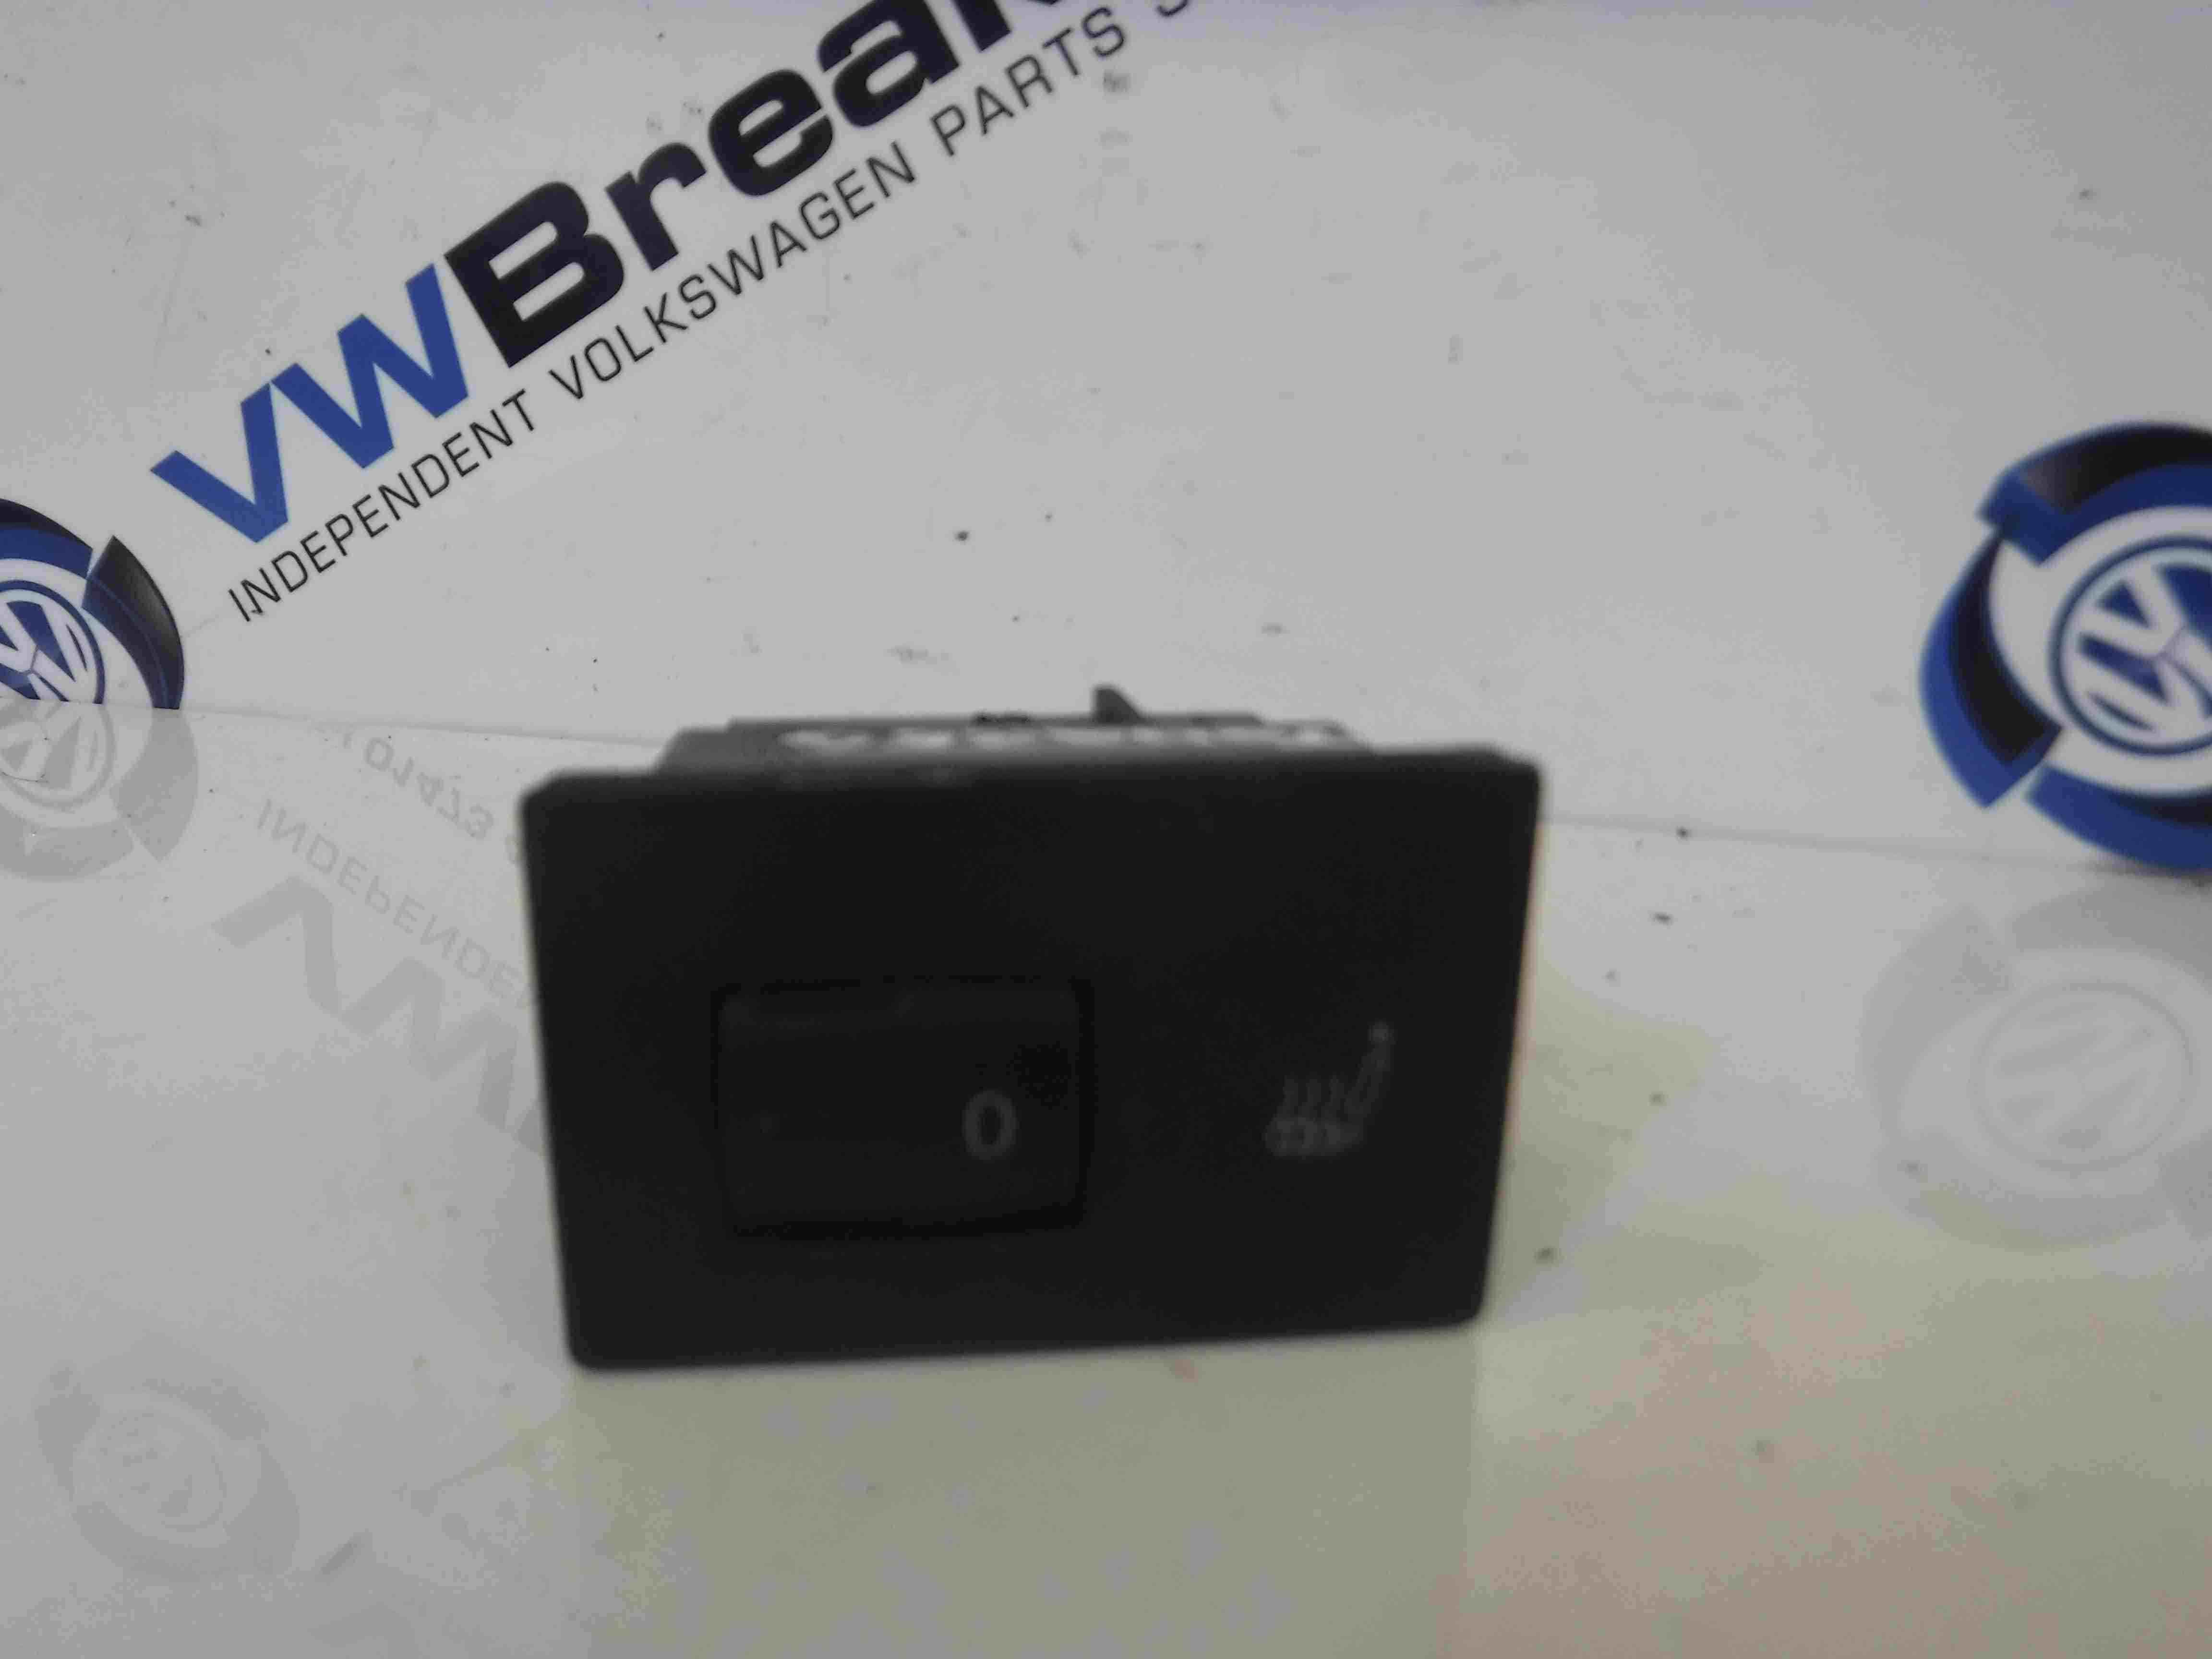 Volkswagen Touareg 2002-2007 Heated Seat Adjustment Switch 7l6963569b